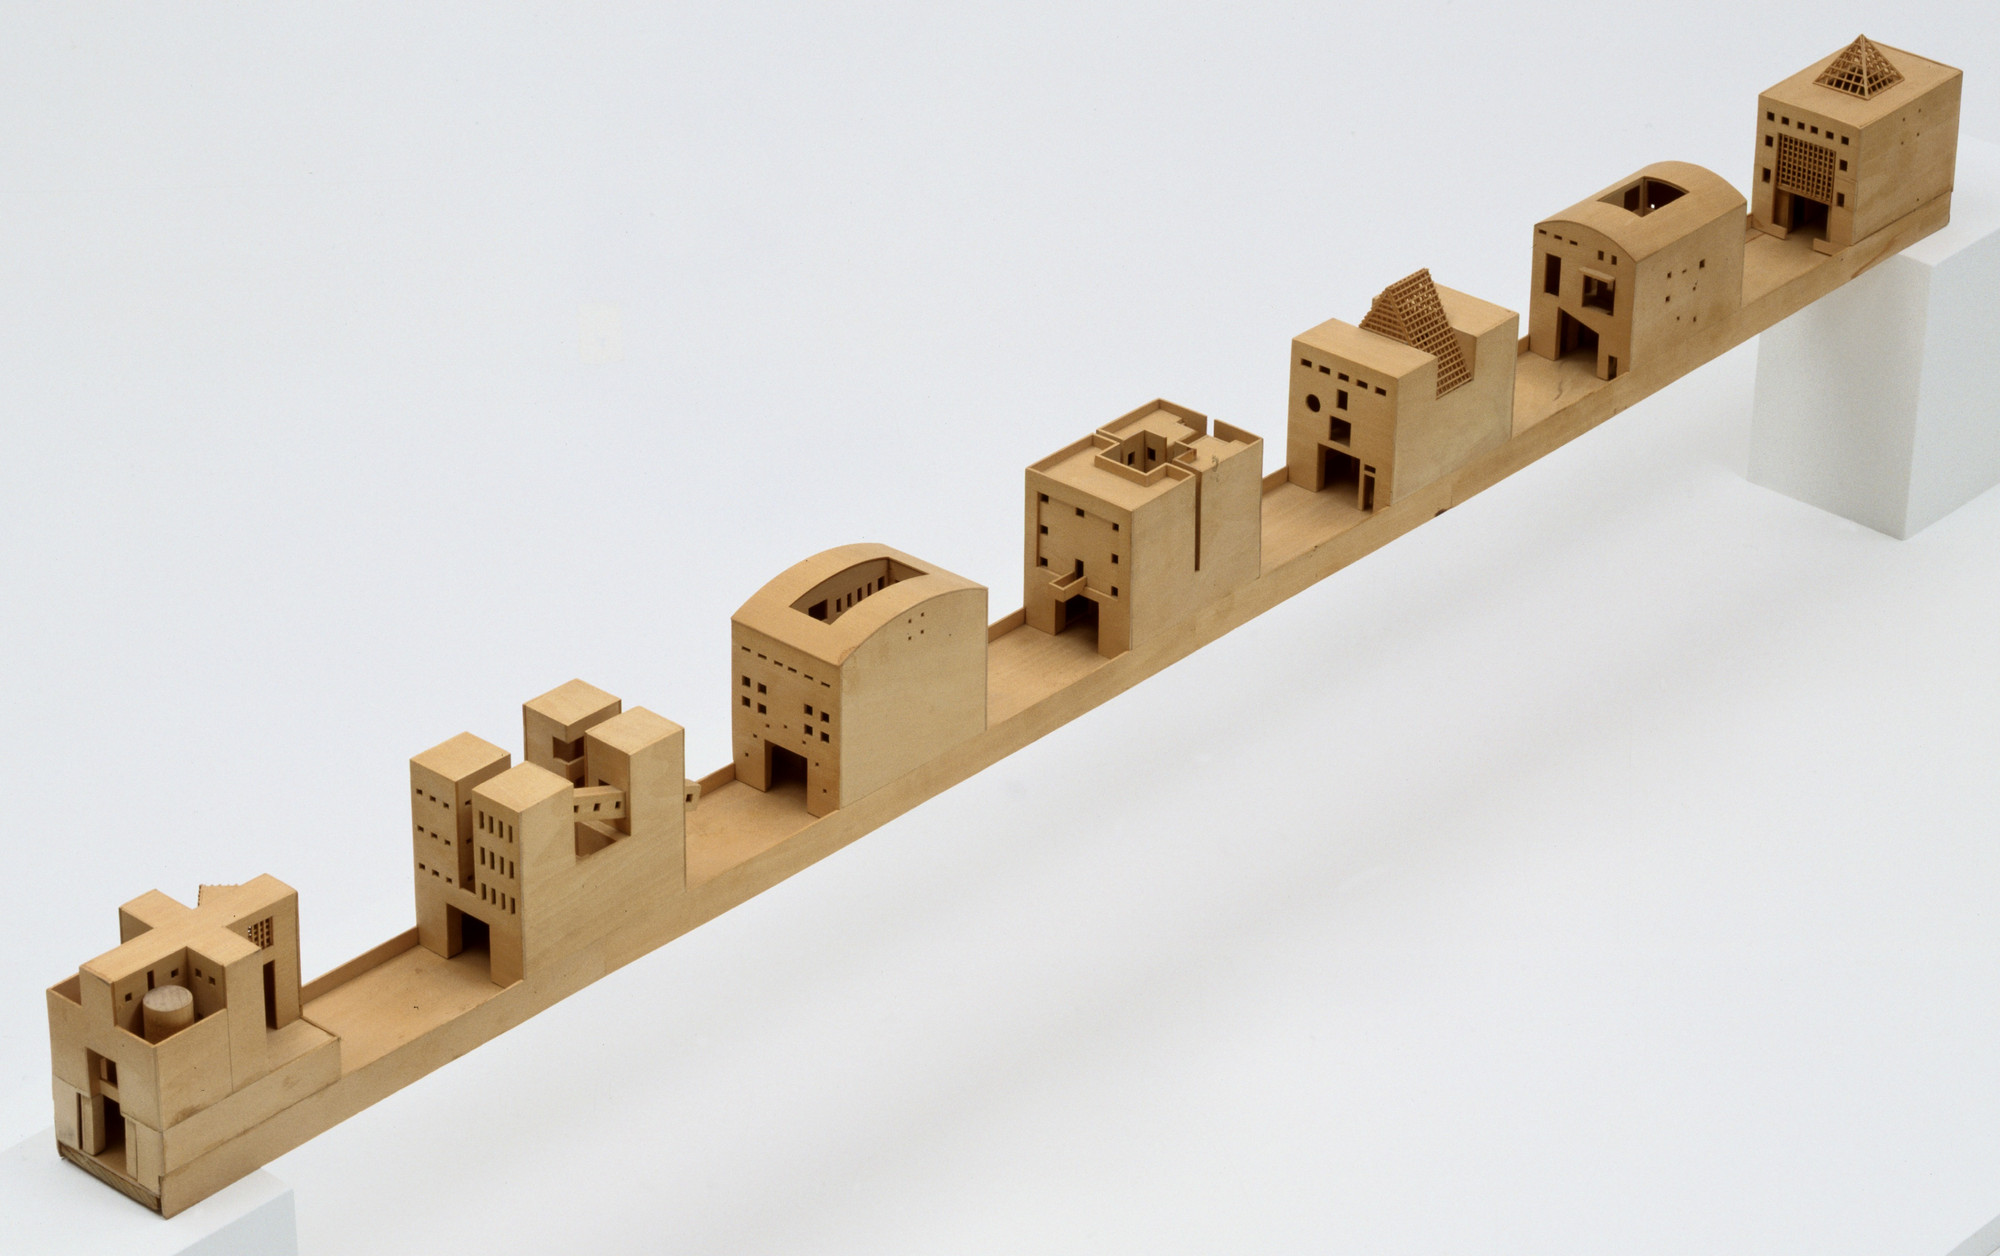 "Steven Holl Architects, Steven Holl, Mark Janson, Joseph Fenton, Suzanne Powadiuk, James Rosen. Bridge of Houses Project, Melbourne, Australia (Scale model 1/16"" = 1'0""). 1979–1982"